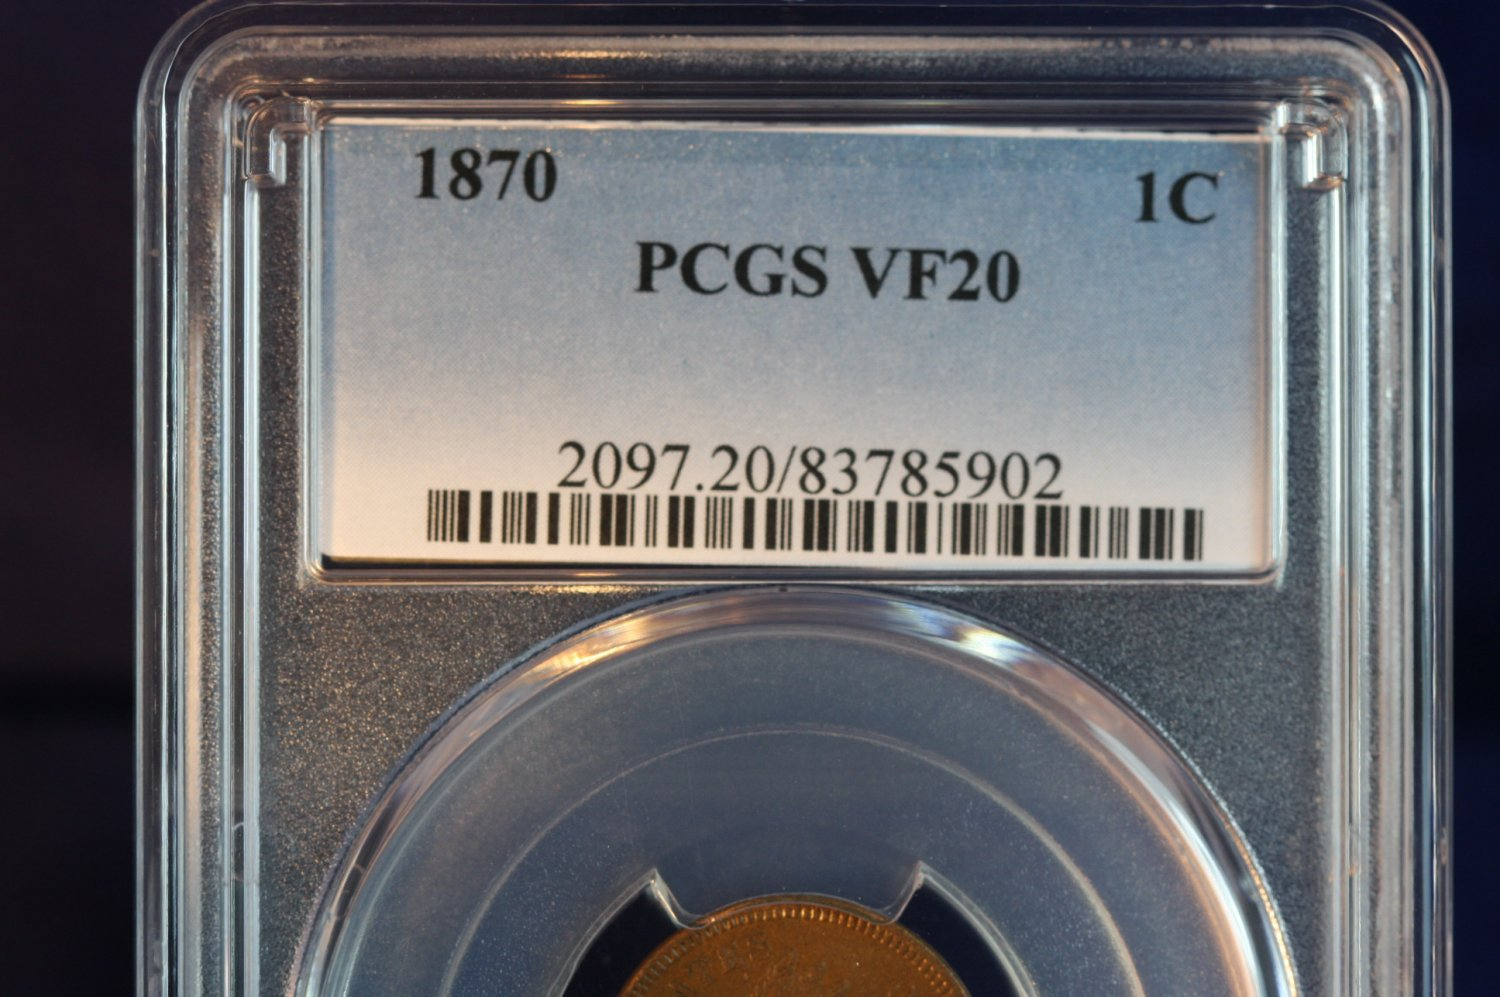 1870 1C Indian Head Penny - PCGS Graded VF20 - Early Date Cents -